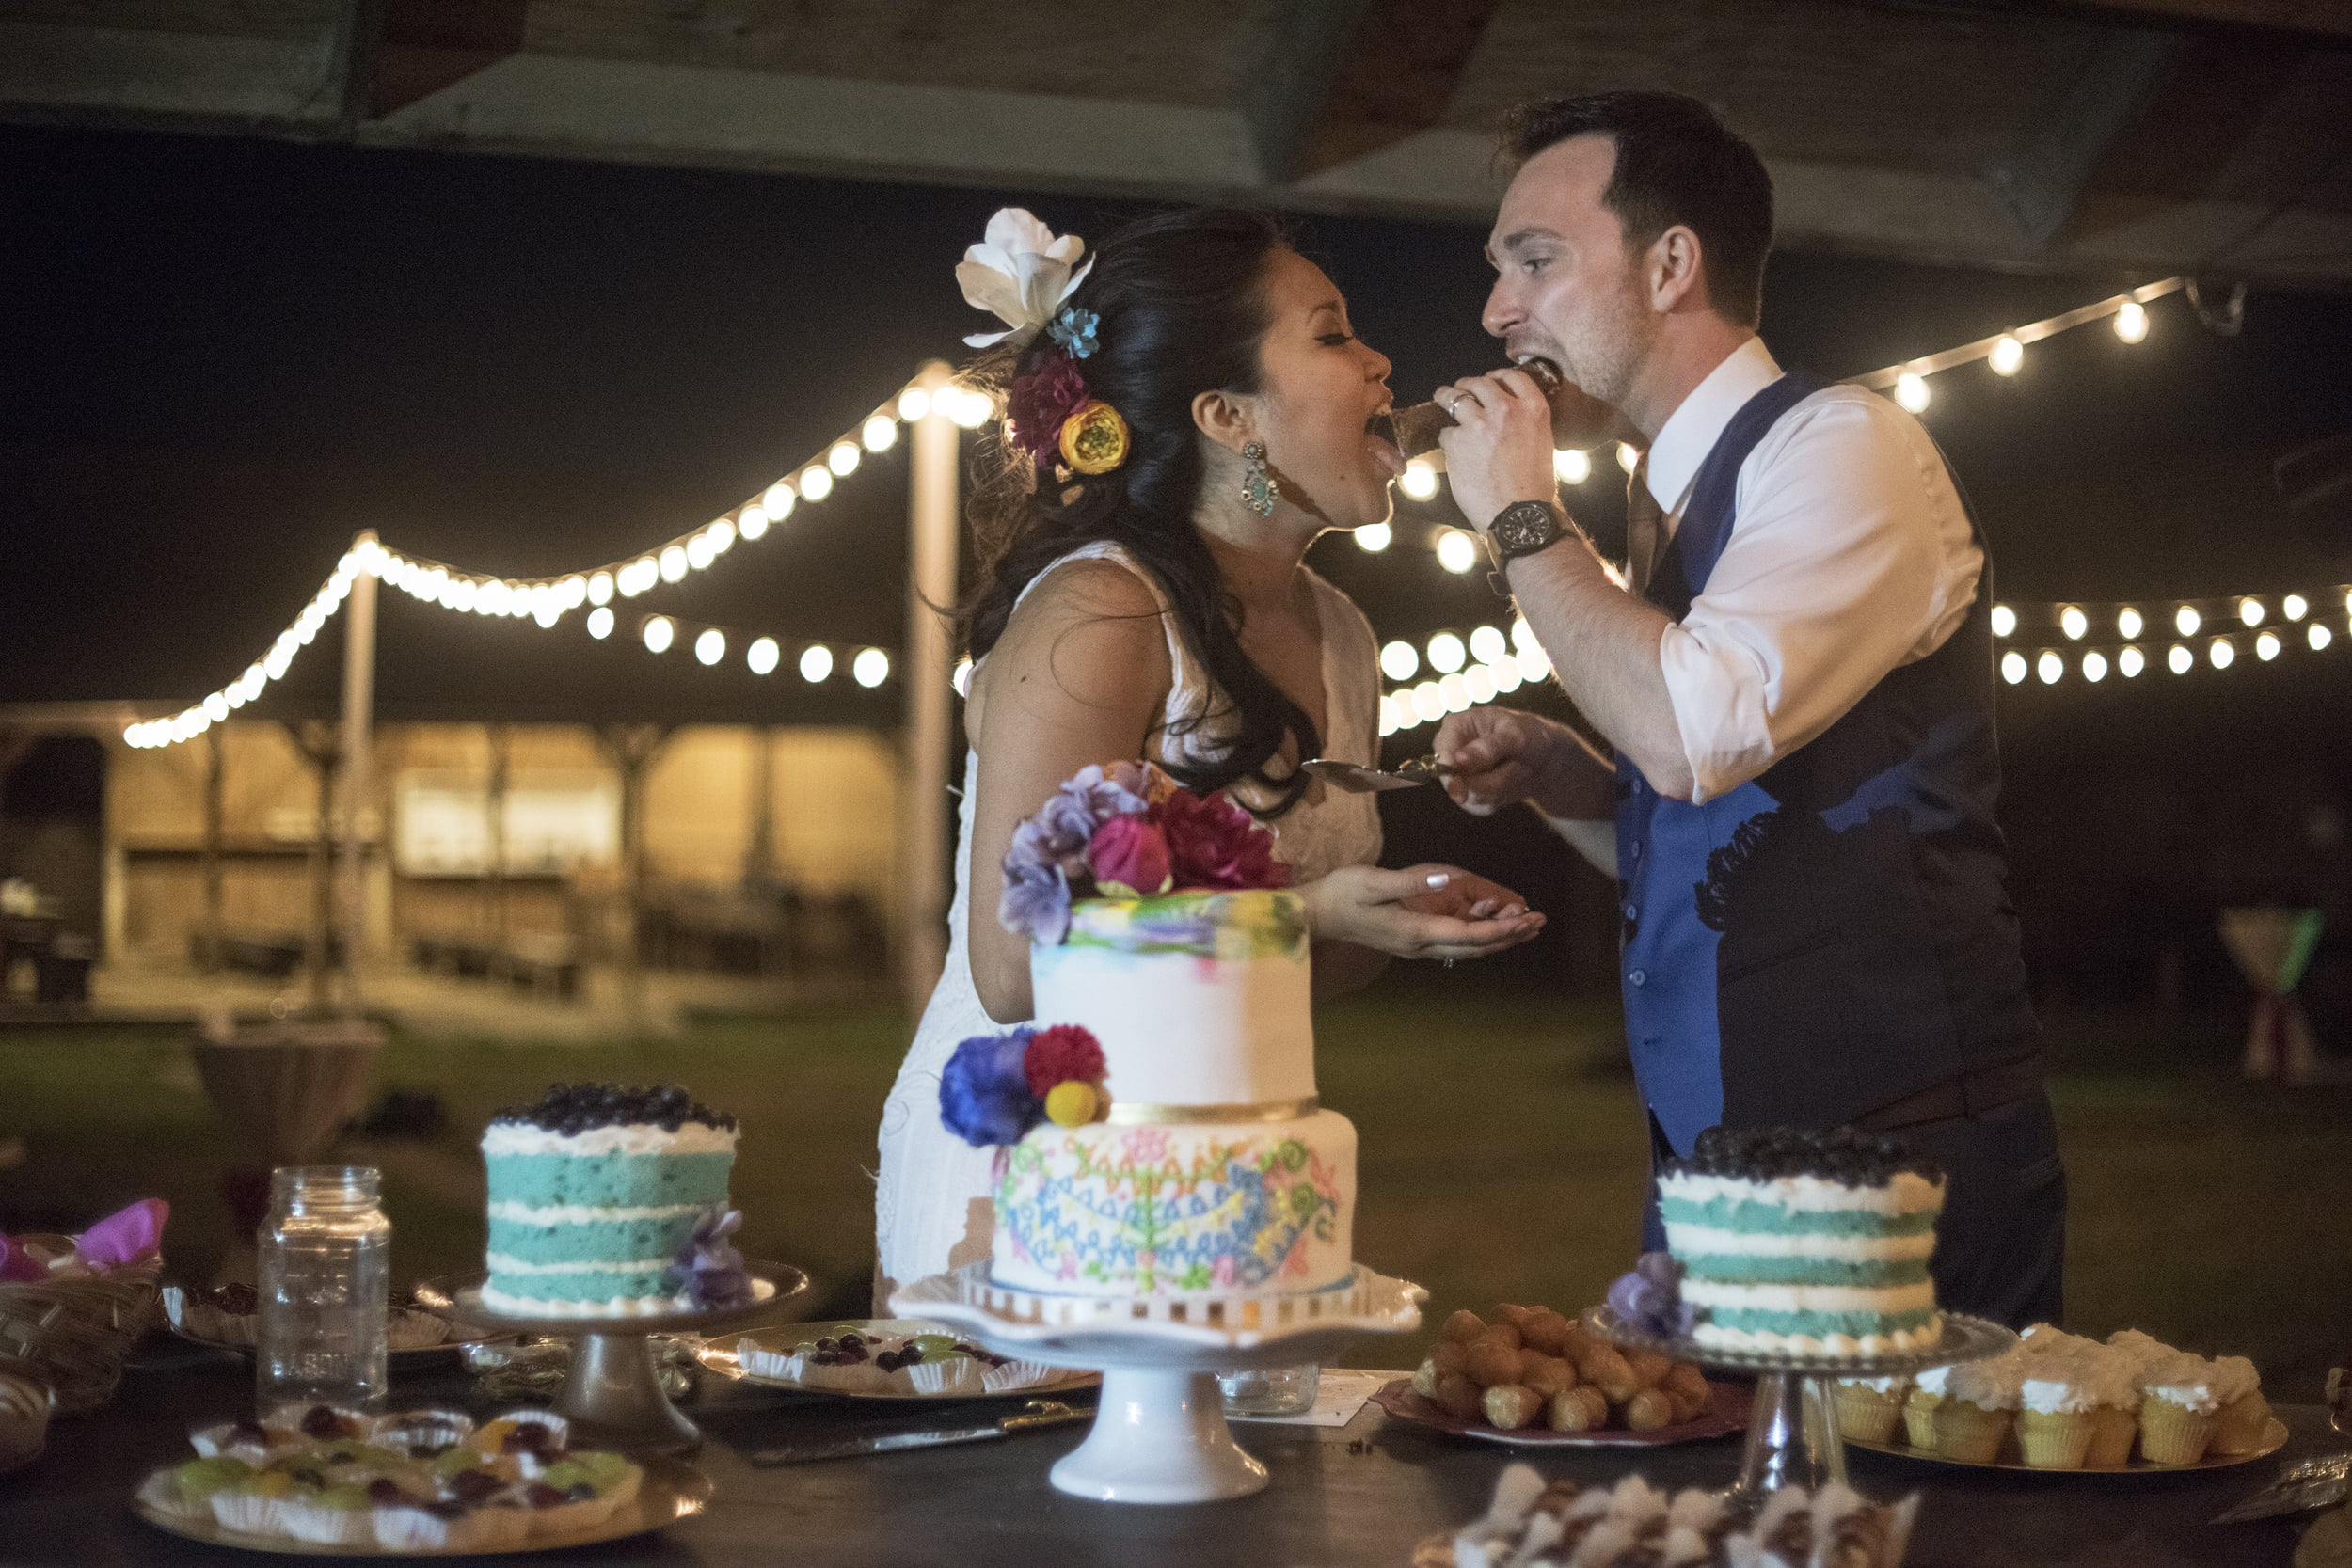 jeff-and-mollie-take-pictures-ivory-and-beau-wedding-planning-ivory-and-beau-bridal-boutique-old-fort-jackson-wedding-colorful-wedding-savannah-wedding-planner-savannah-weddings-michelle-and-johnny-wedding-savannah-weddings-indie-wedding-45.jpg